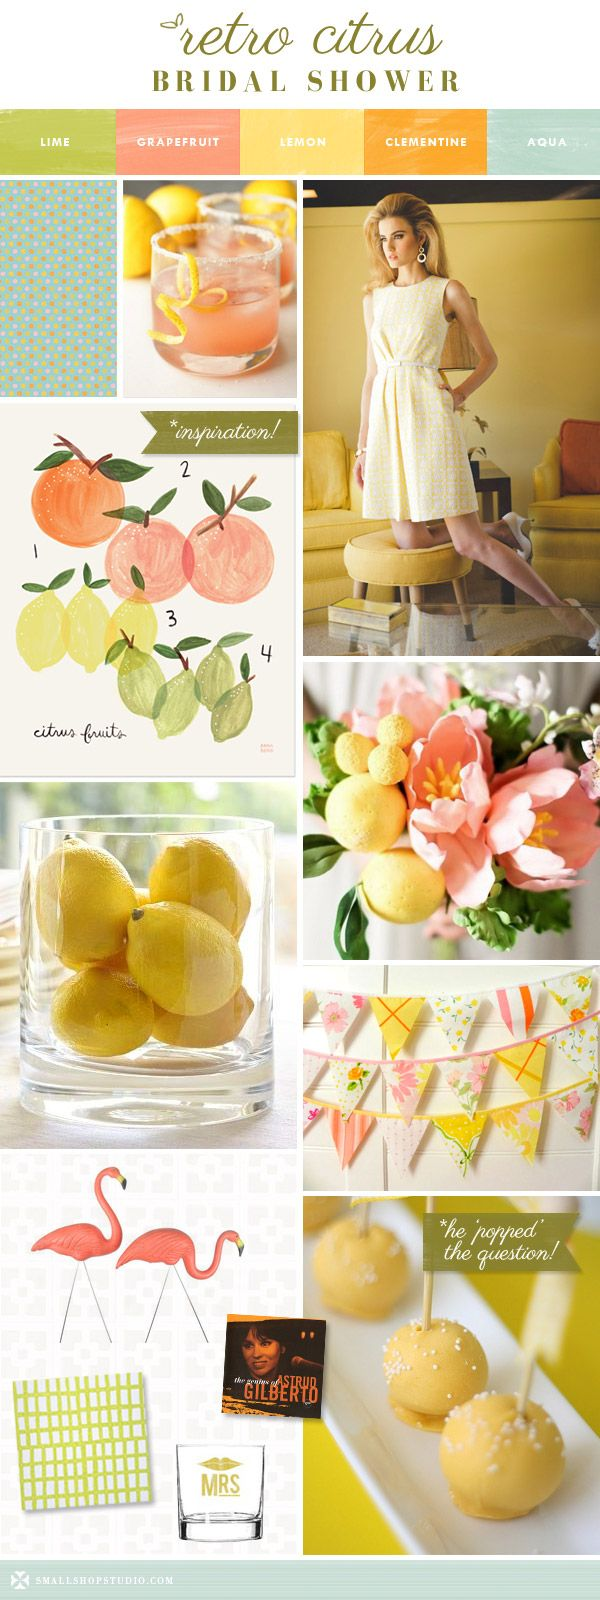 small shop: retro citrus bridal shower, lemon yellow, grapefruit, orange, lime, aqua, Trina Turk, flamingos, Astrud Gilberto, bossa nova, bunting, cocktails, cake pops